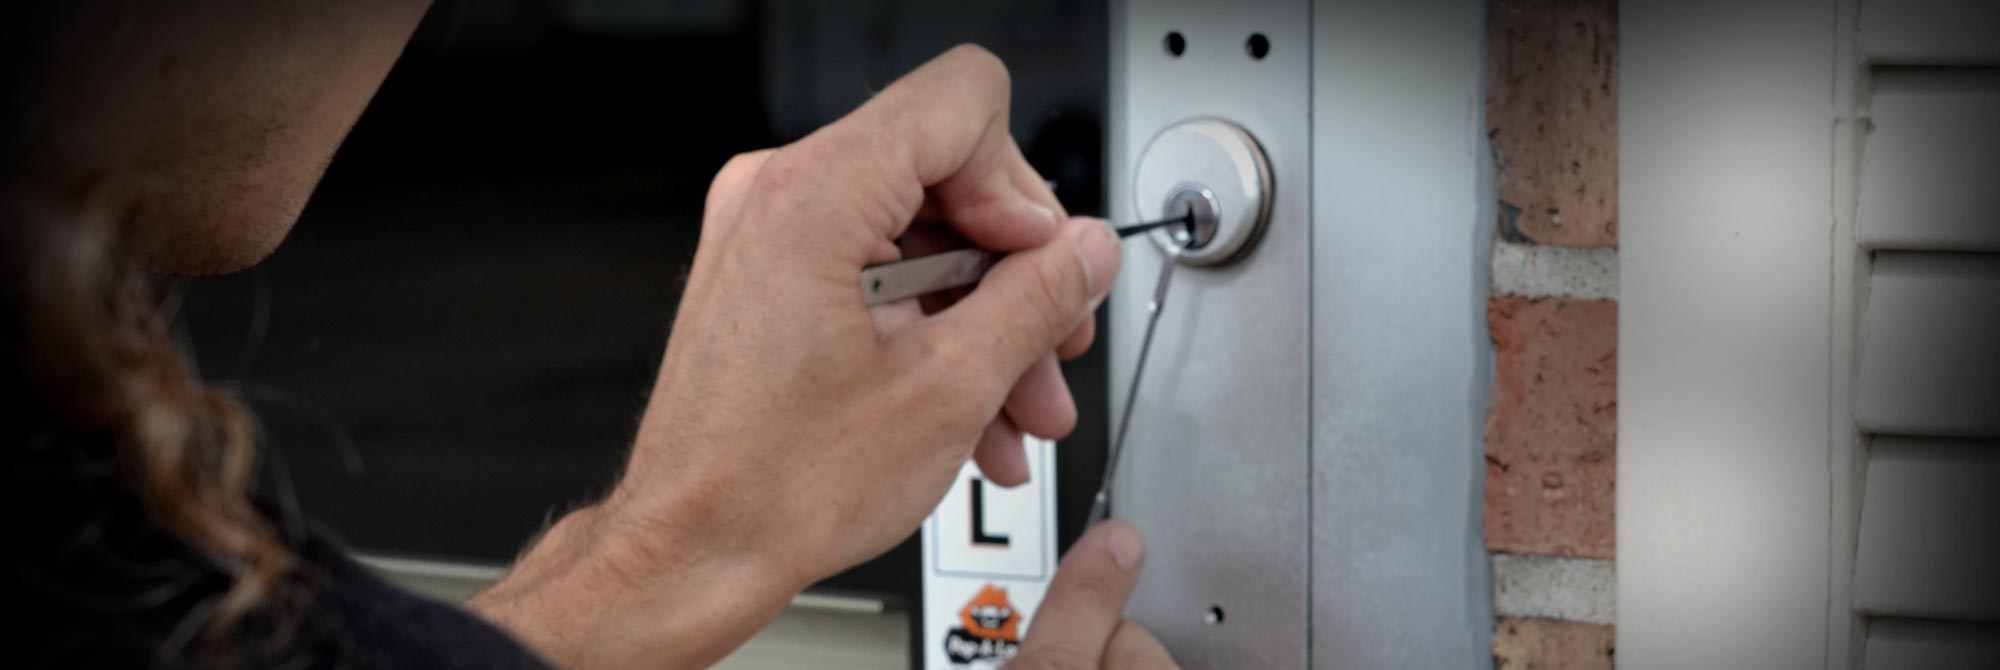 residential locksmith. Commercial Locksmith Services In Omaha, NE And Council Bluffs, IA Residential C